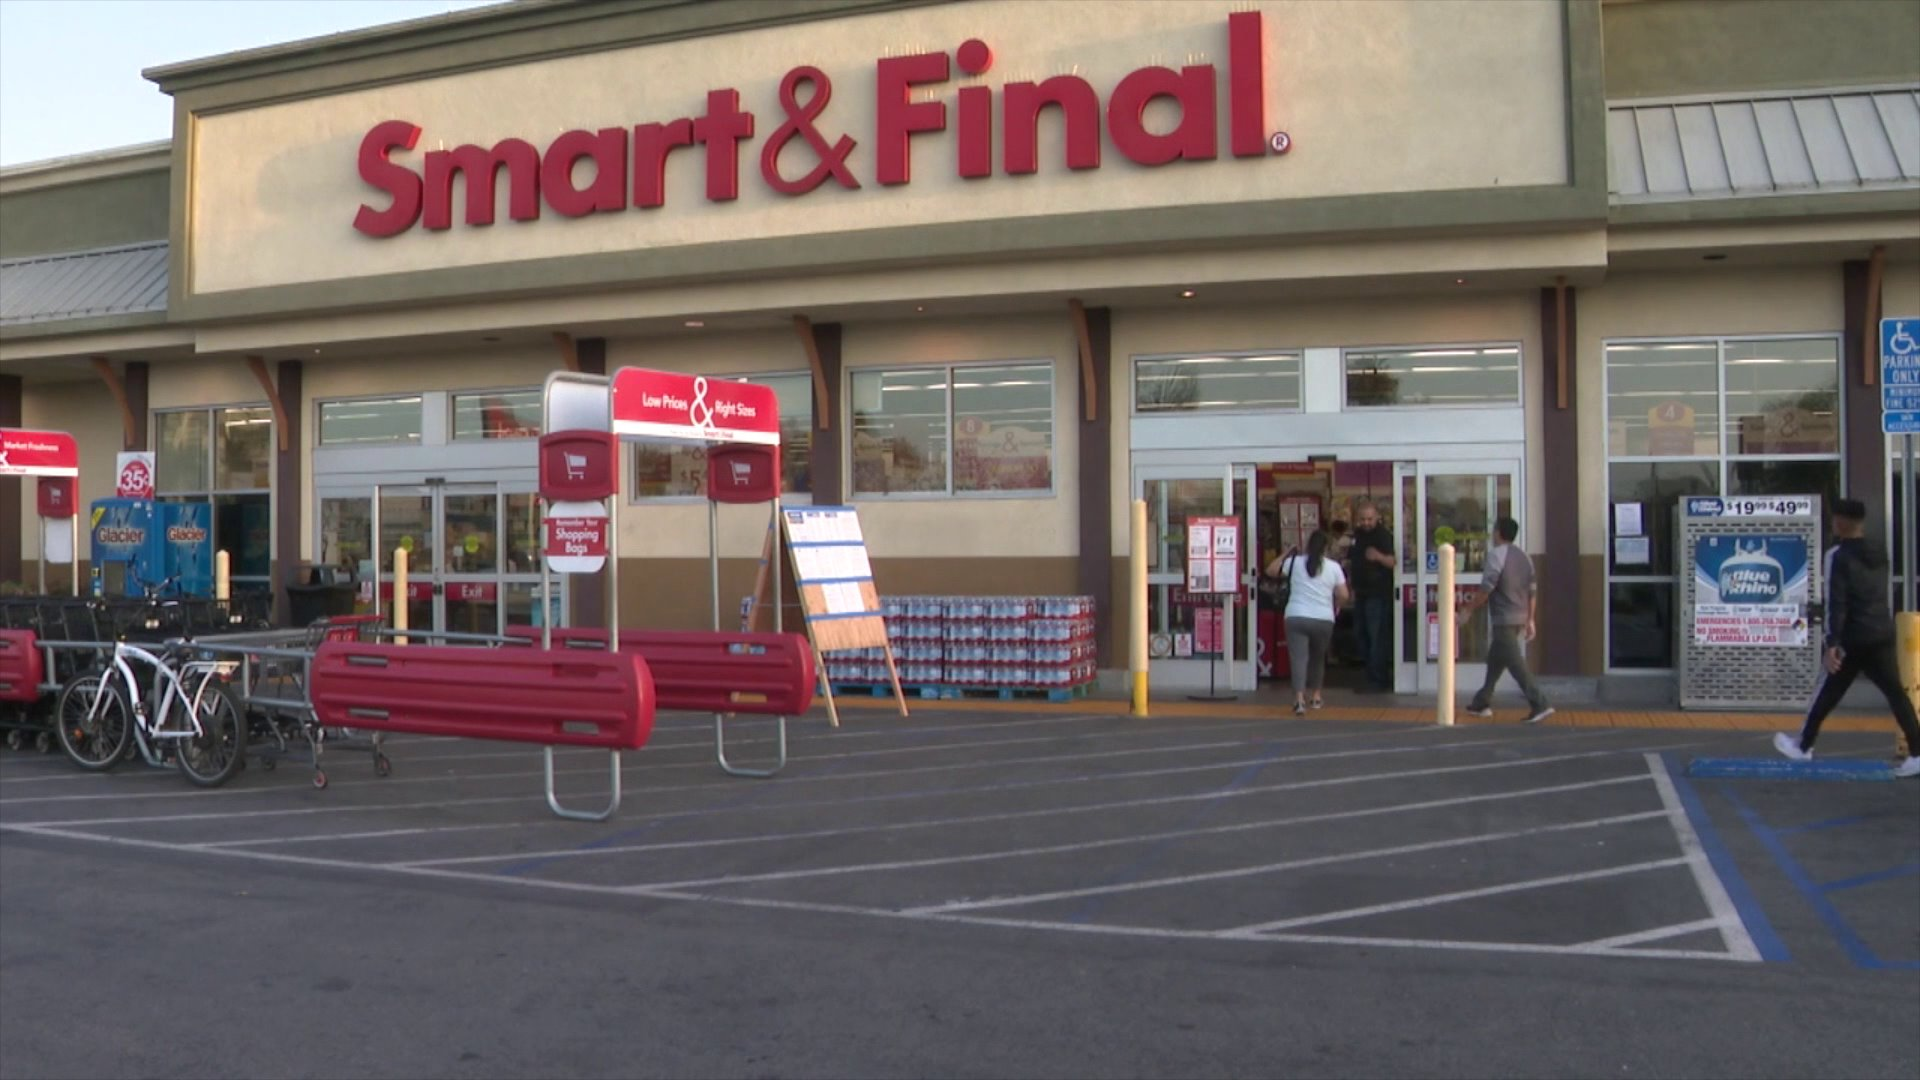 A Smart and Final in Costa Mesa is seen on April 3, 2020. (KTLA)